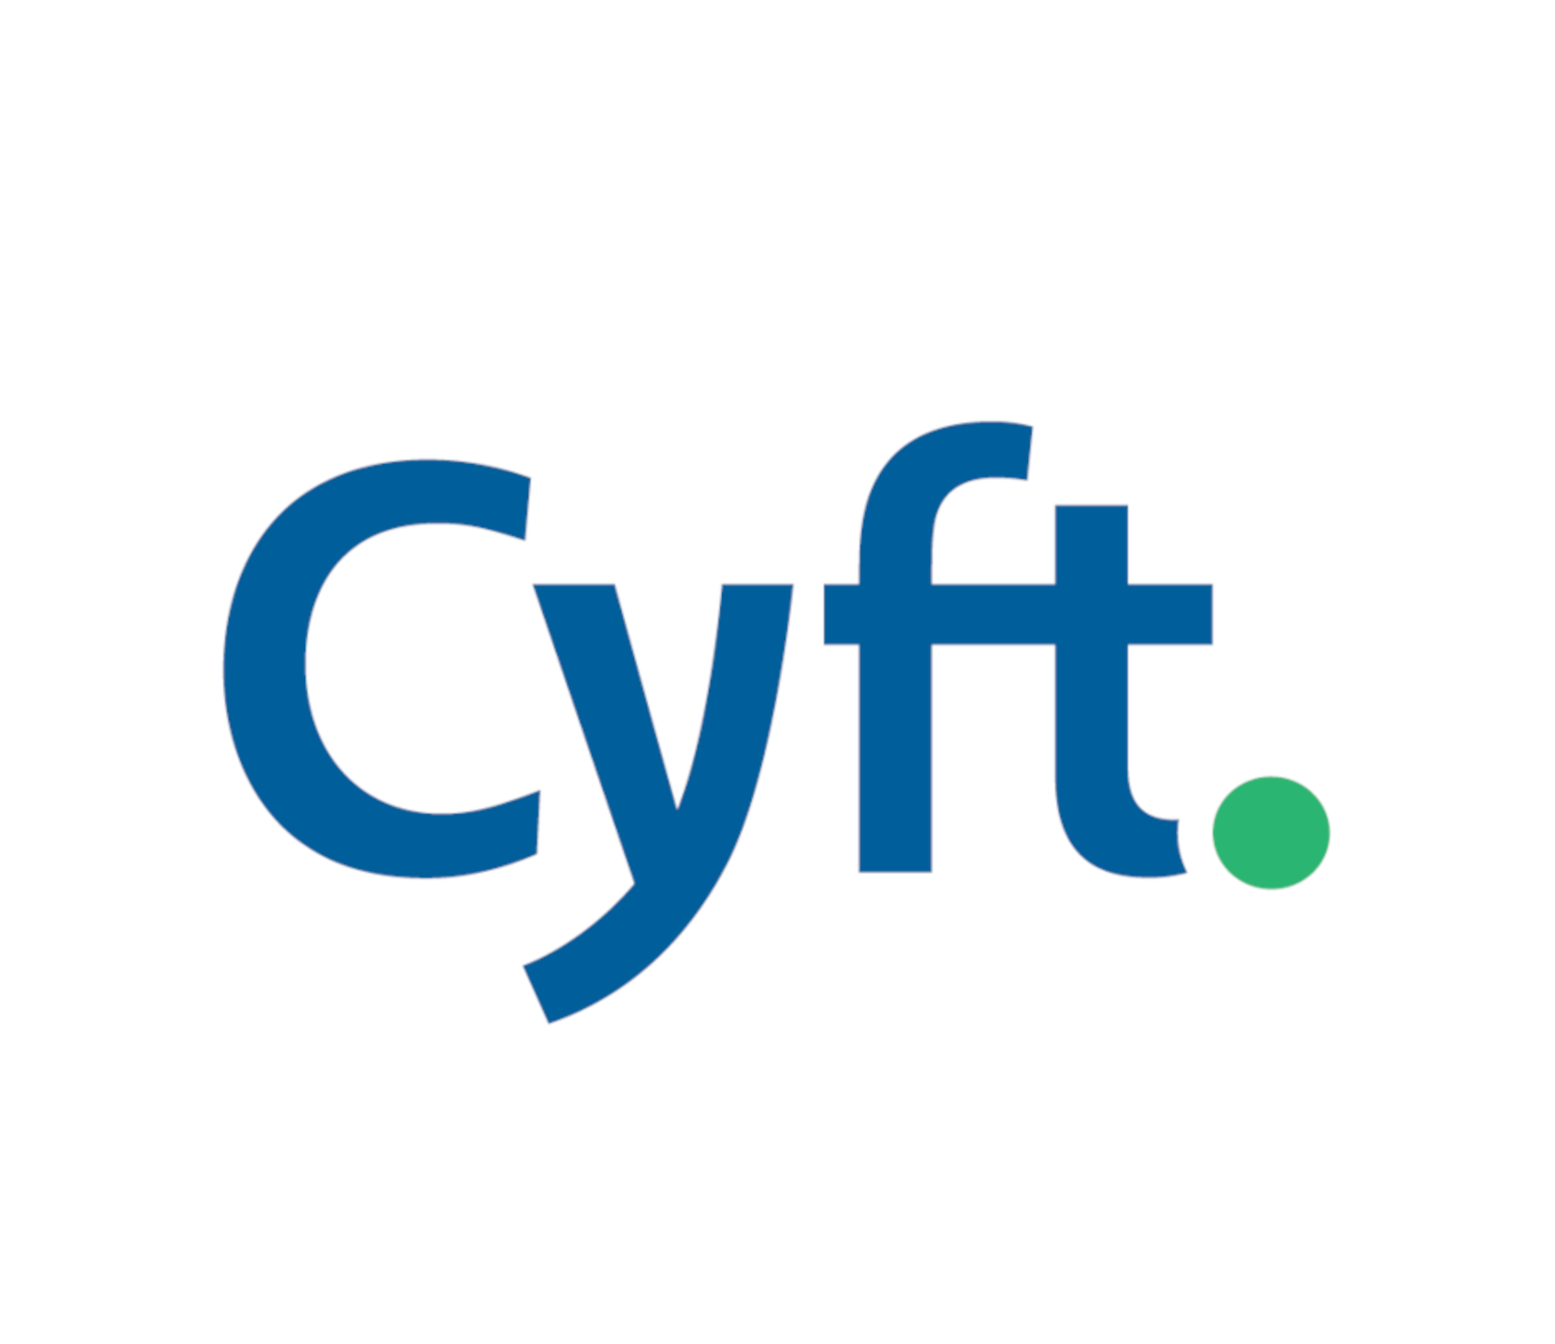 Cyft is developing predictive analytics software for healthcare and the life sciences.